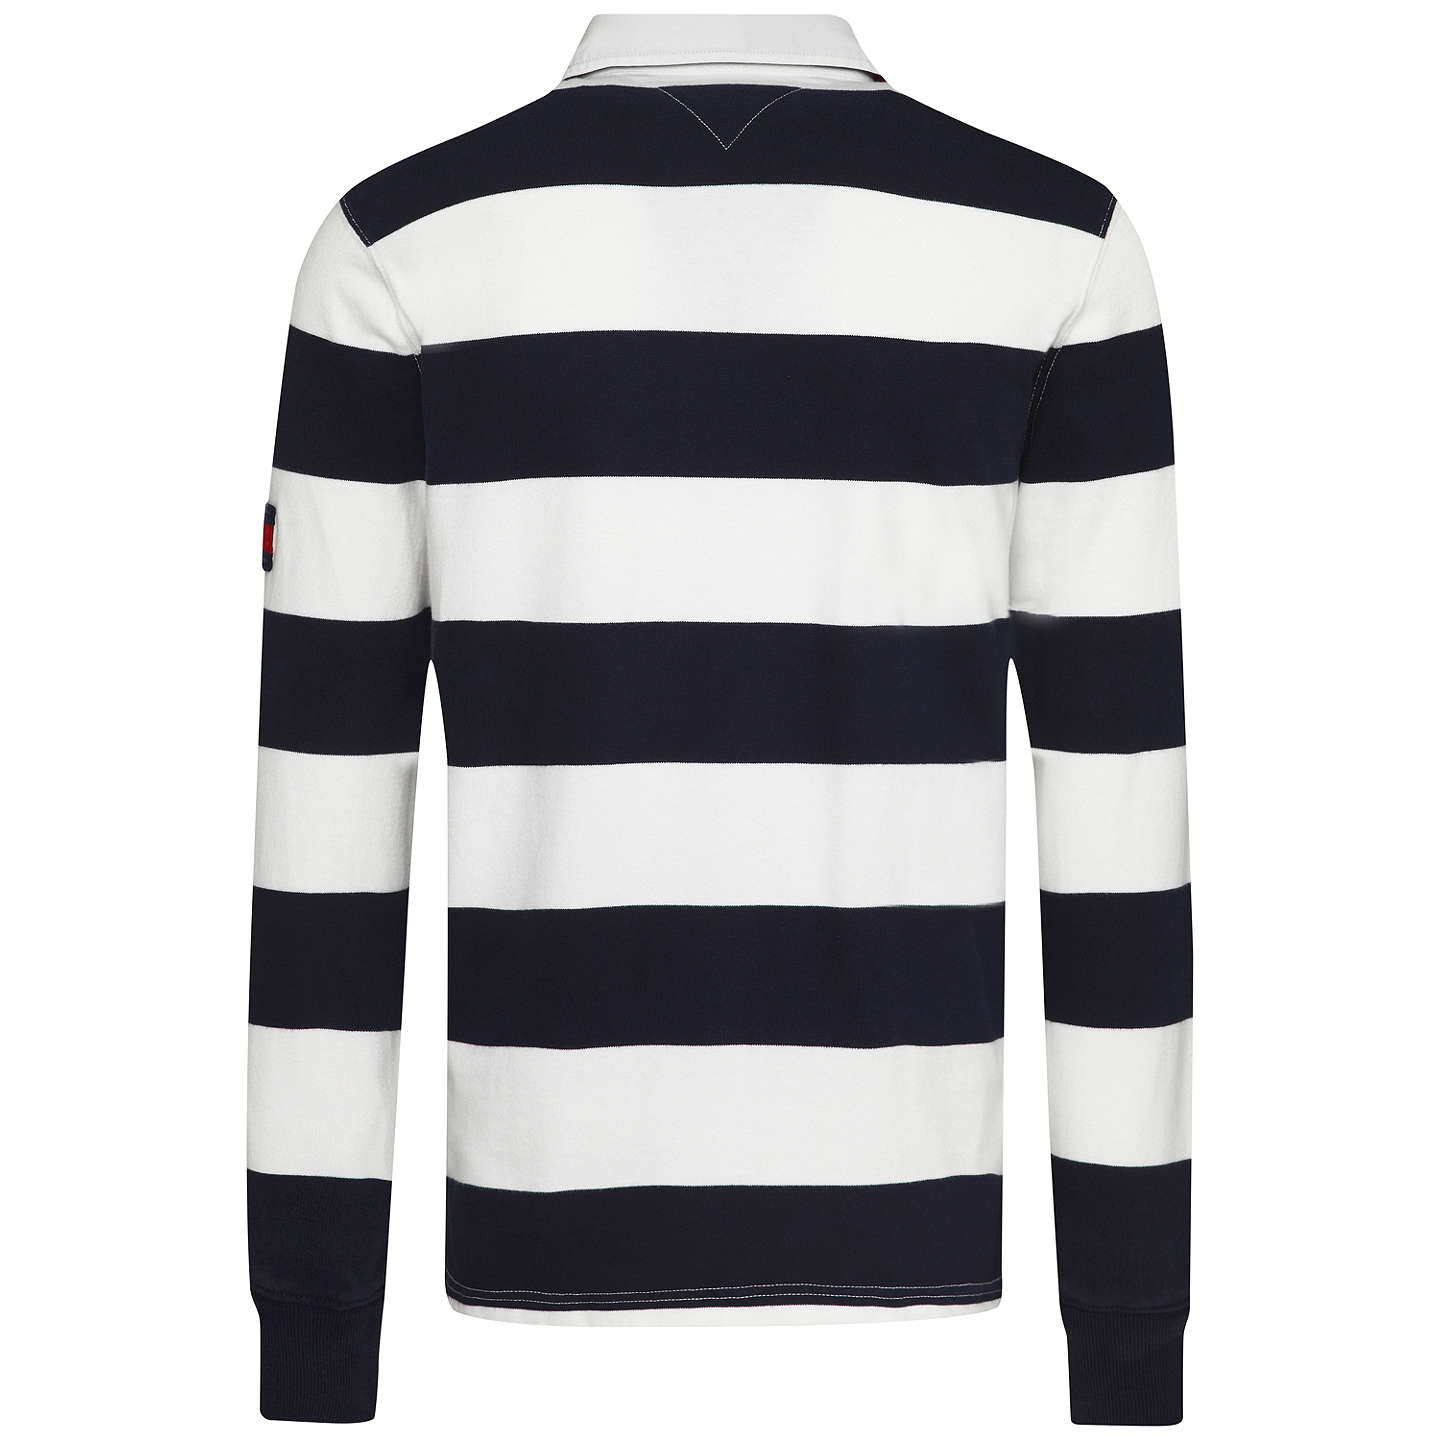 Tommy Hilfiger Ricky Stripe Rugby Shirt Navy White M Online At Johnlewis